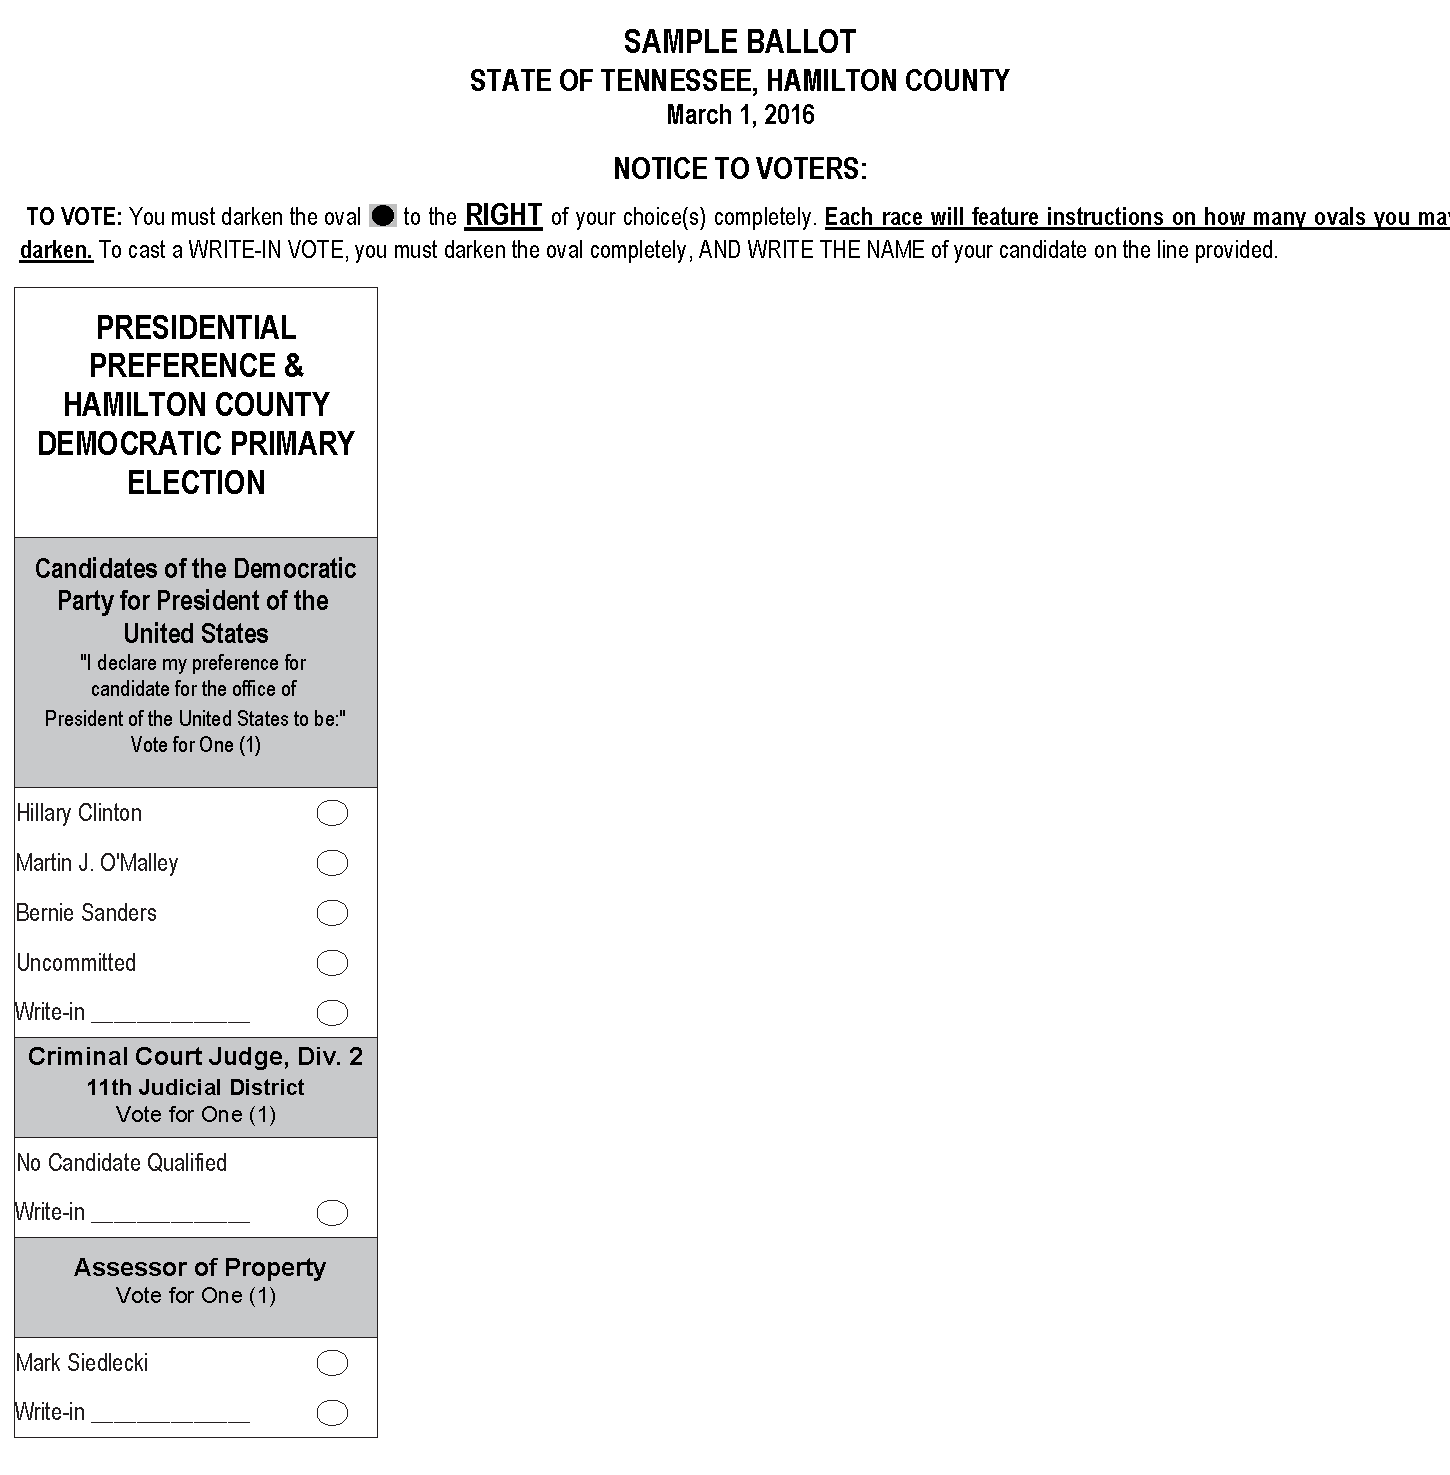 Election Commission for Hamilton County, TN > Election Archives > 2016